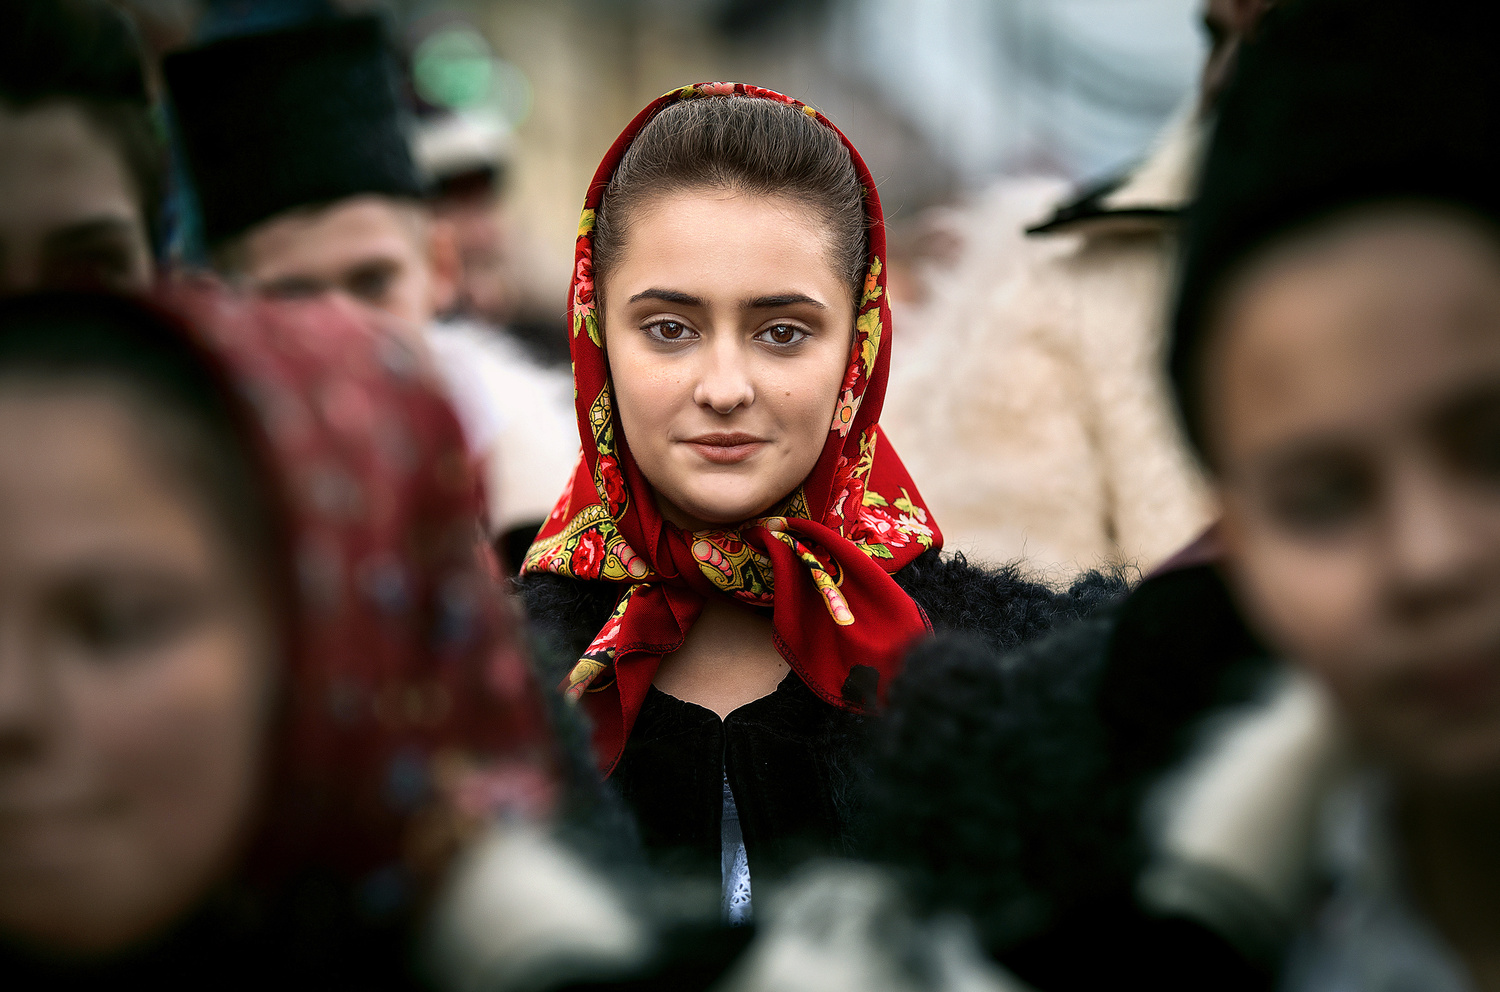 Beauty of Tradition by Alex Robciuc